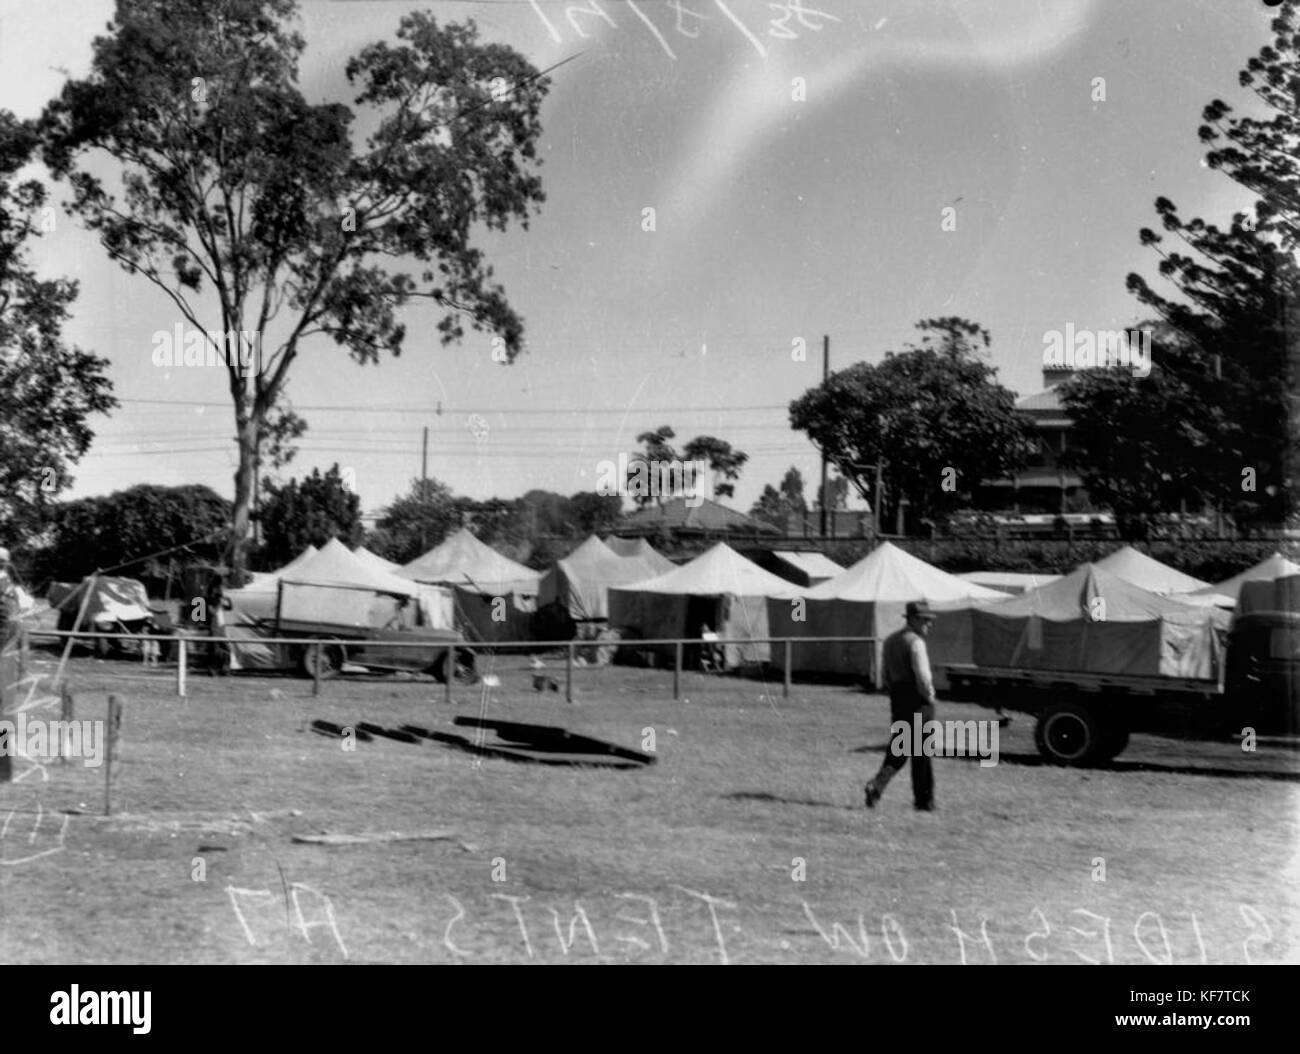 1 104660 Sideshow tents at the Exhibition Brisbane August 1938 & 1 104660 Sideshow tents at the Exhibition Brisbane August 1938 ...